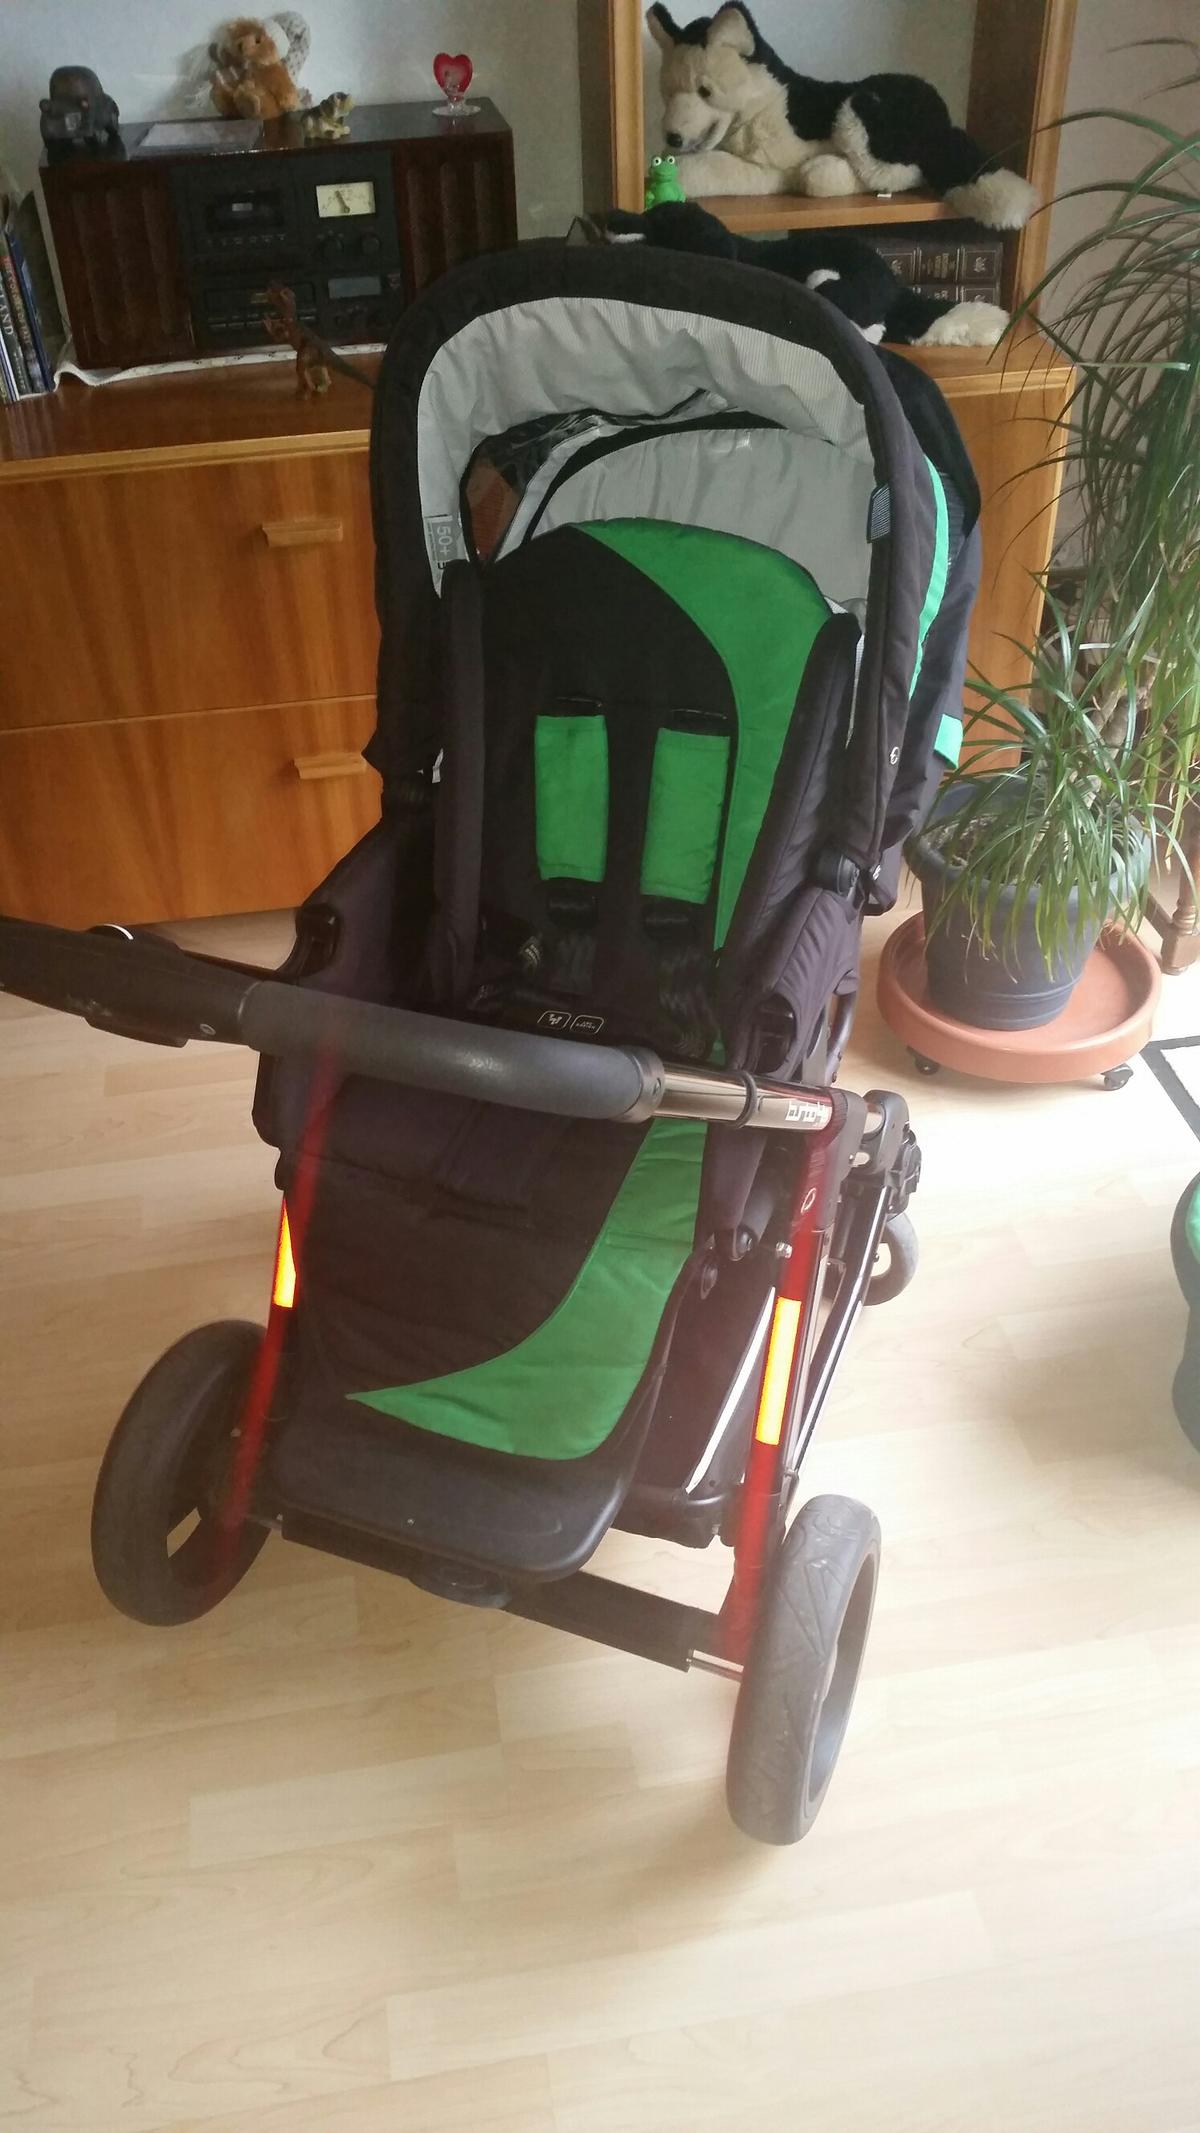 Abc Turbo 6 Zum Buggy Umbauen Kinderwagen Buggy Abc Design Turbo 4s In 58638 Iserlohn For